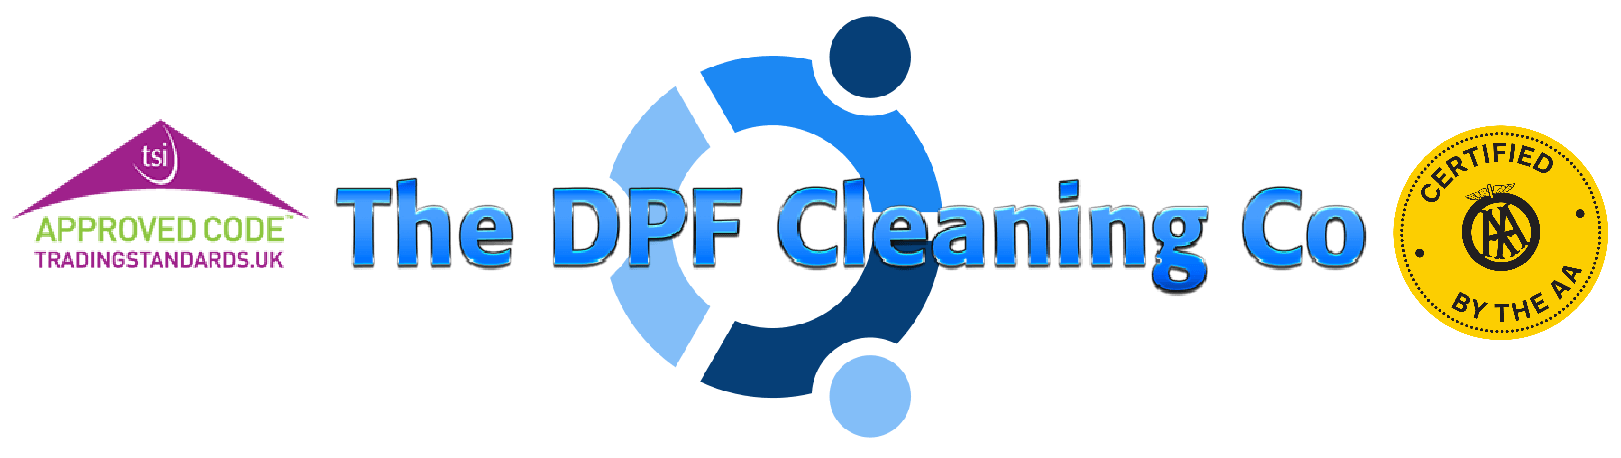 DPF Cleaning in Peterborough